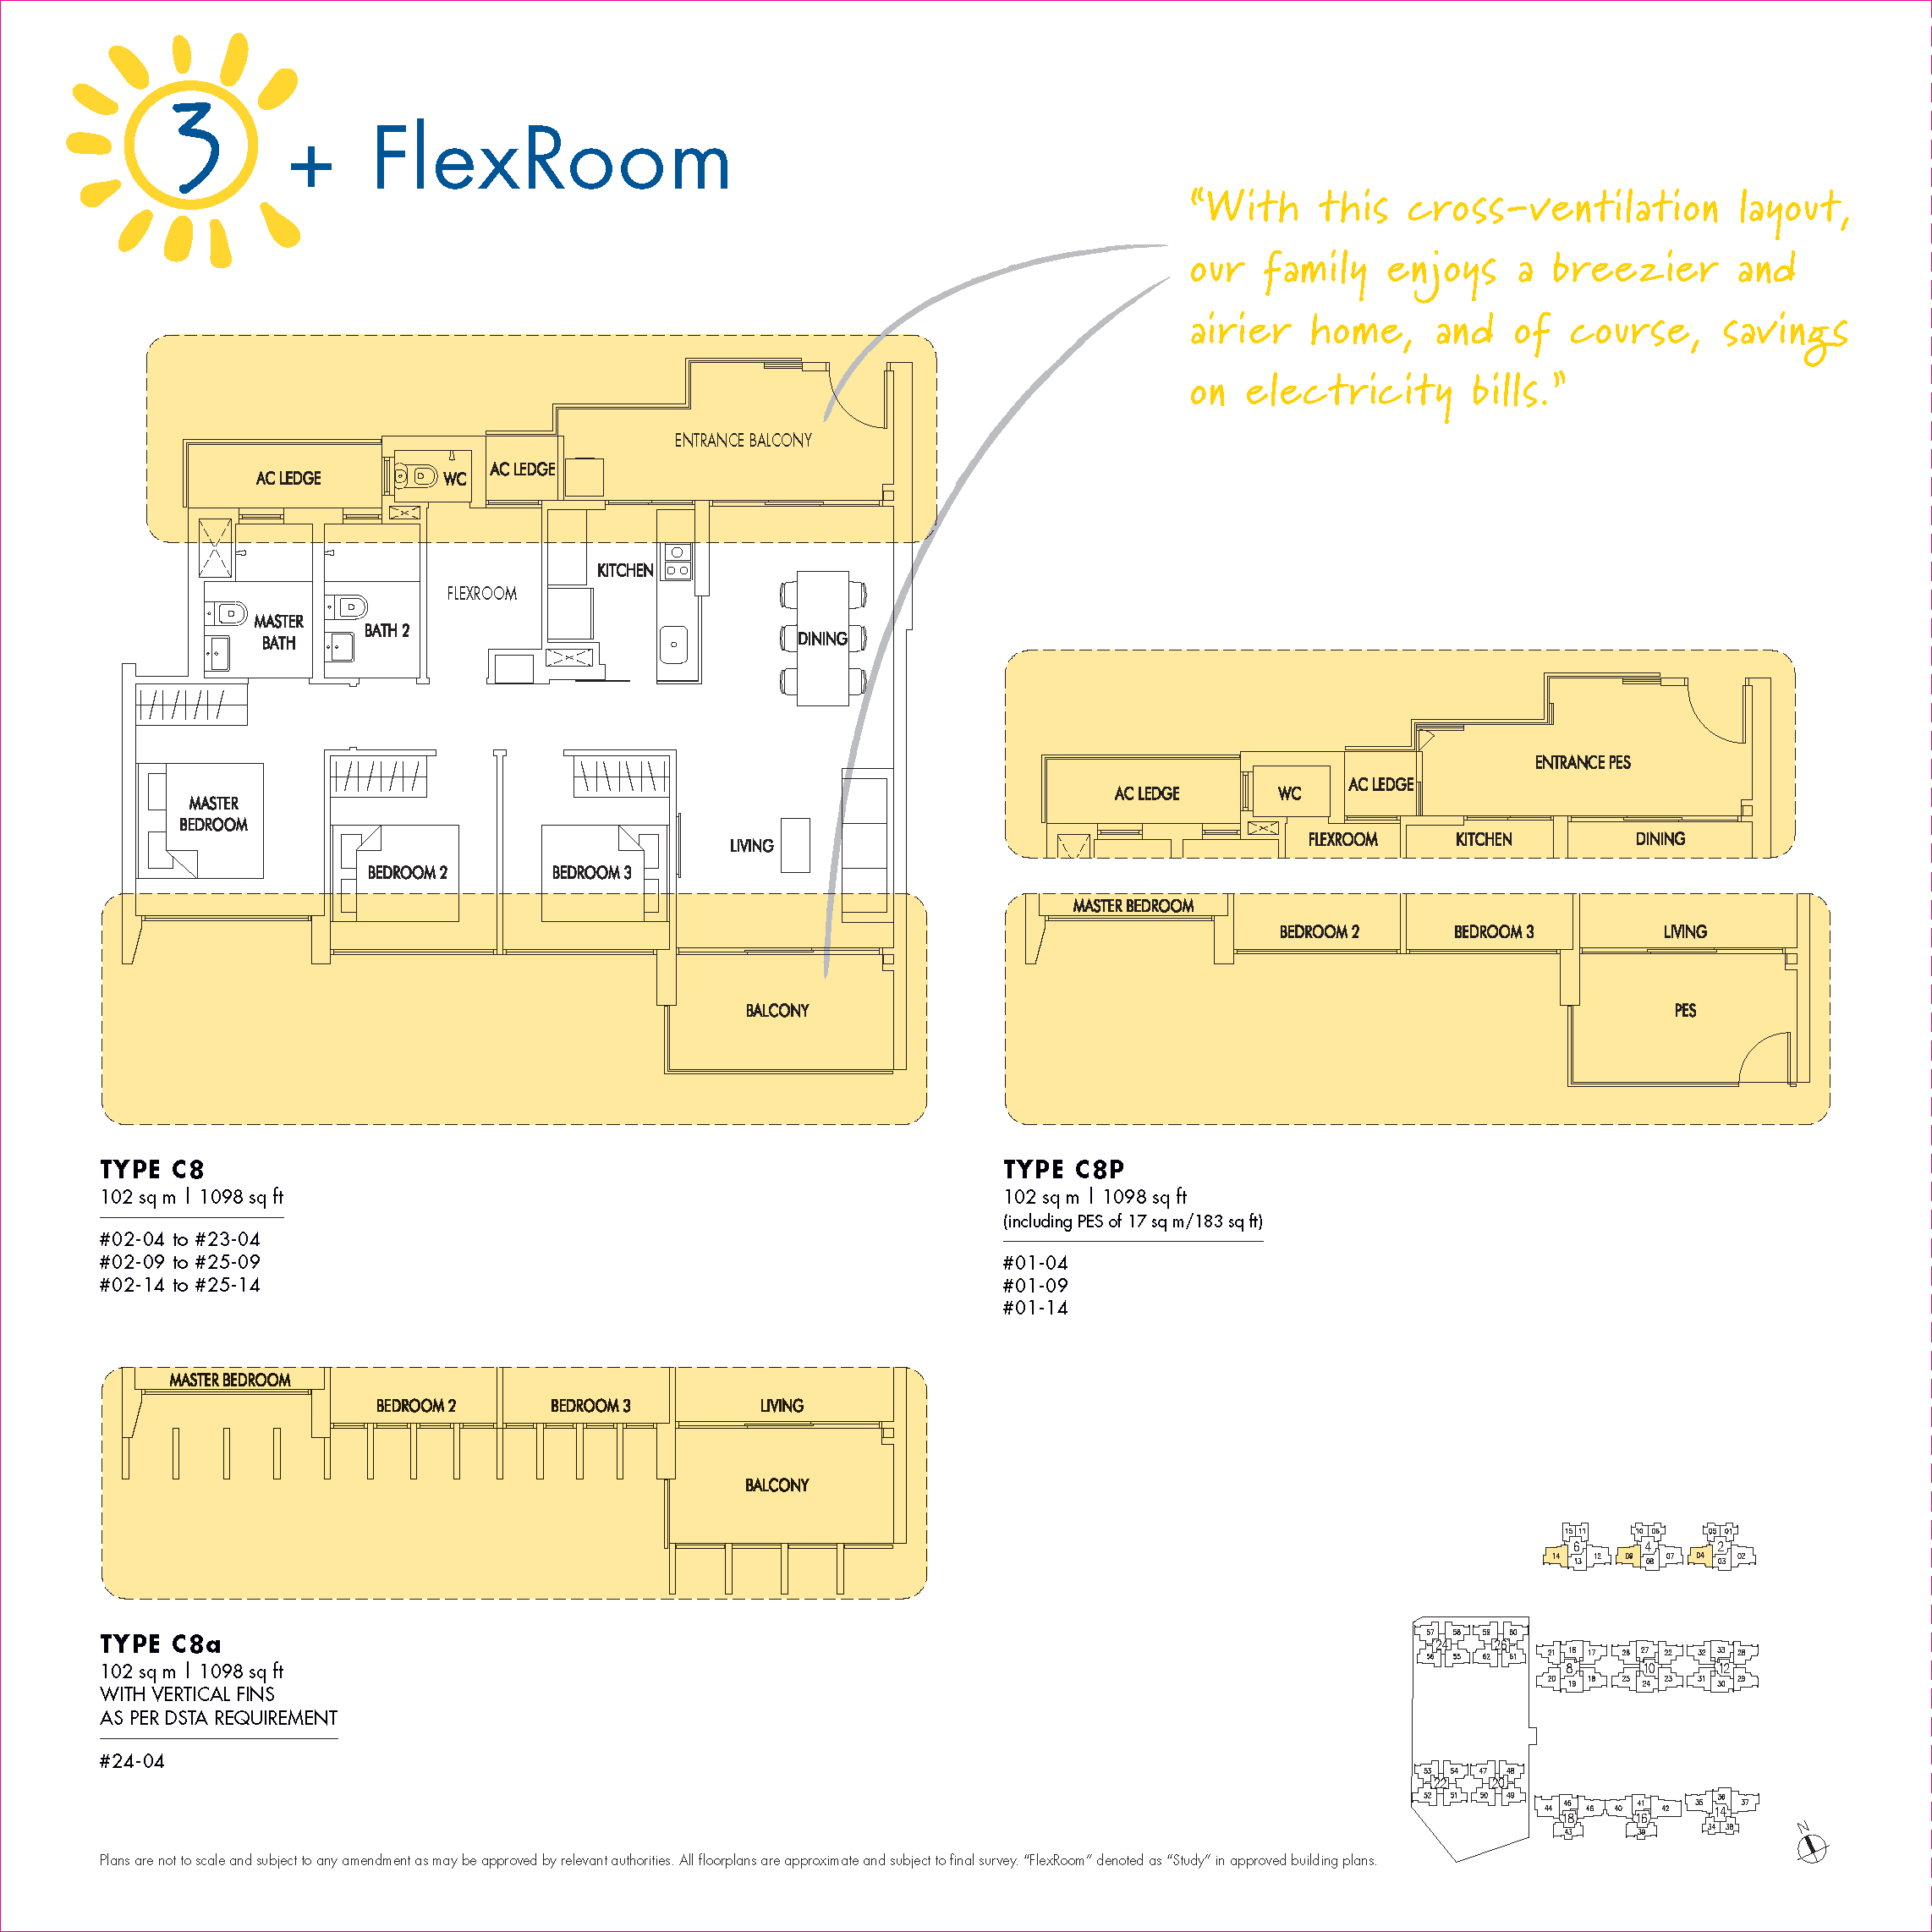 3 + Flexroom